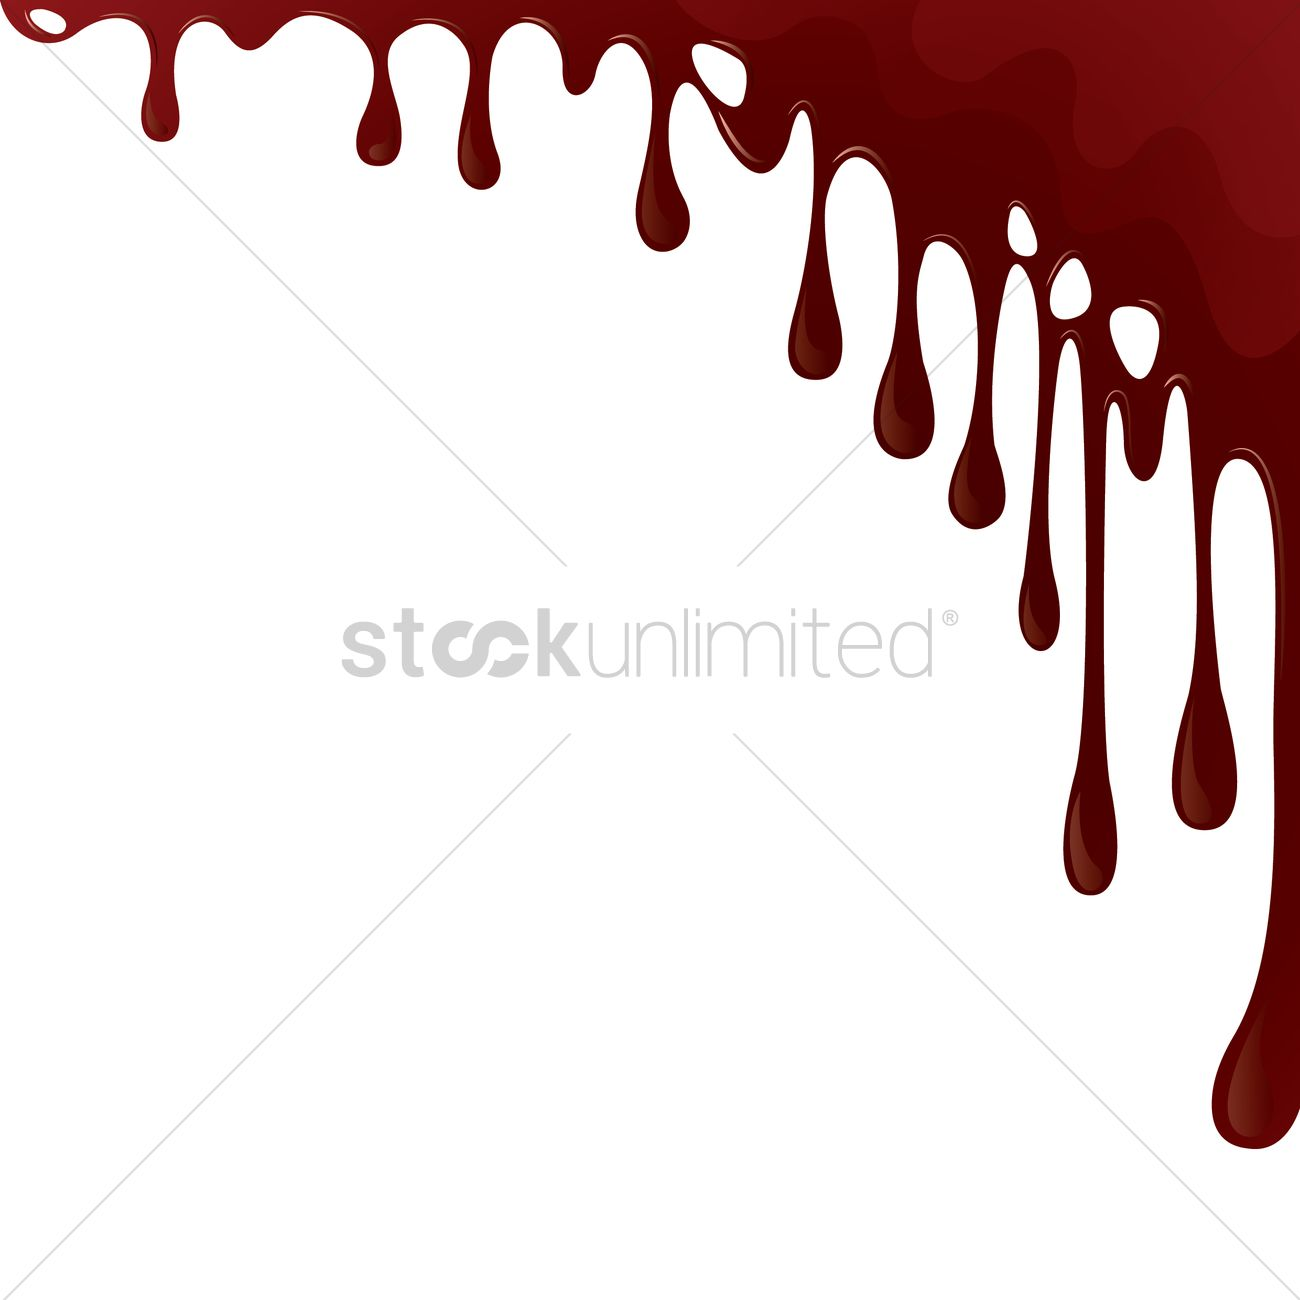 dripping blood background vector image 1503483 stockunlimited rh stockunlimited com dripping blood clipart border